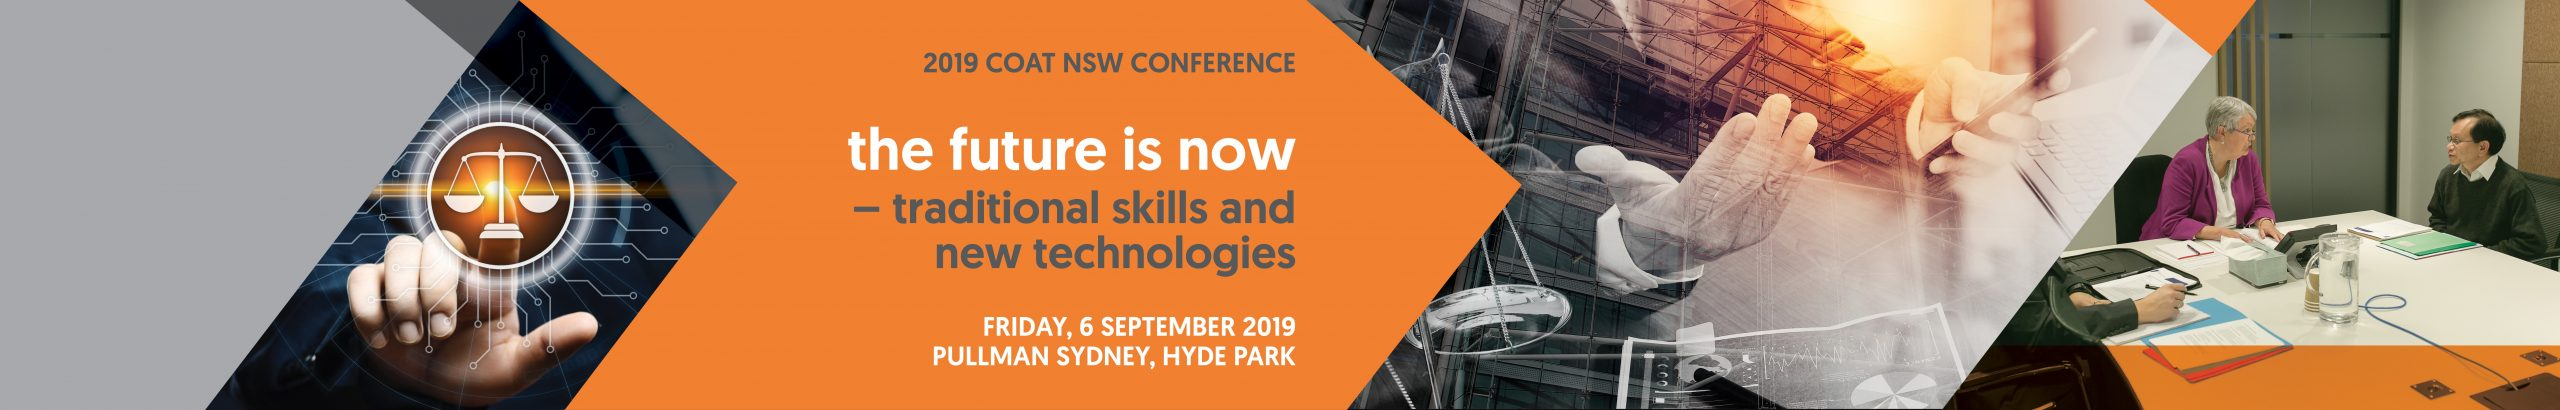 2019 COAT NSW Conference – The future is now – traditional skills and new technologies, 6 September Pullman Sydney Hyde Park. Early bird closes Friday 12 July – click image to book.